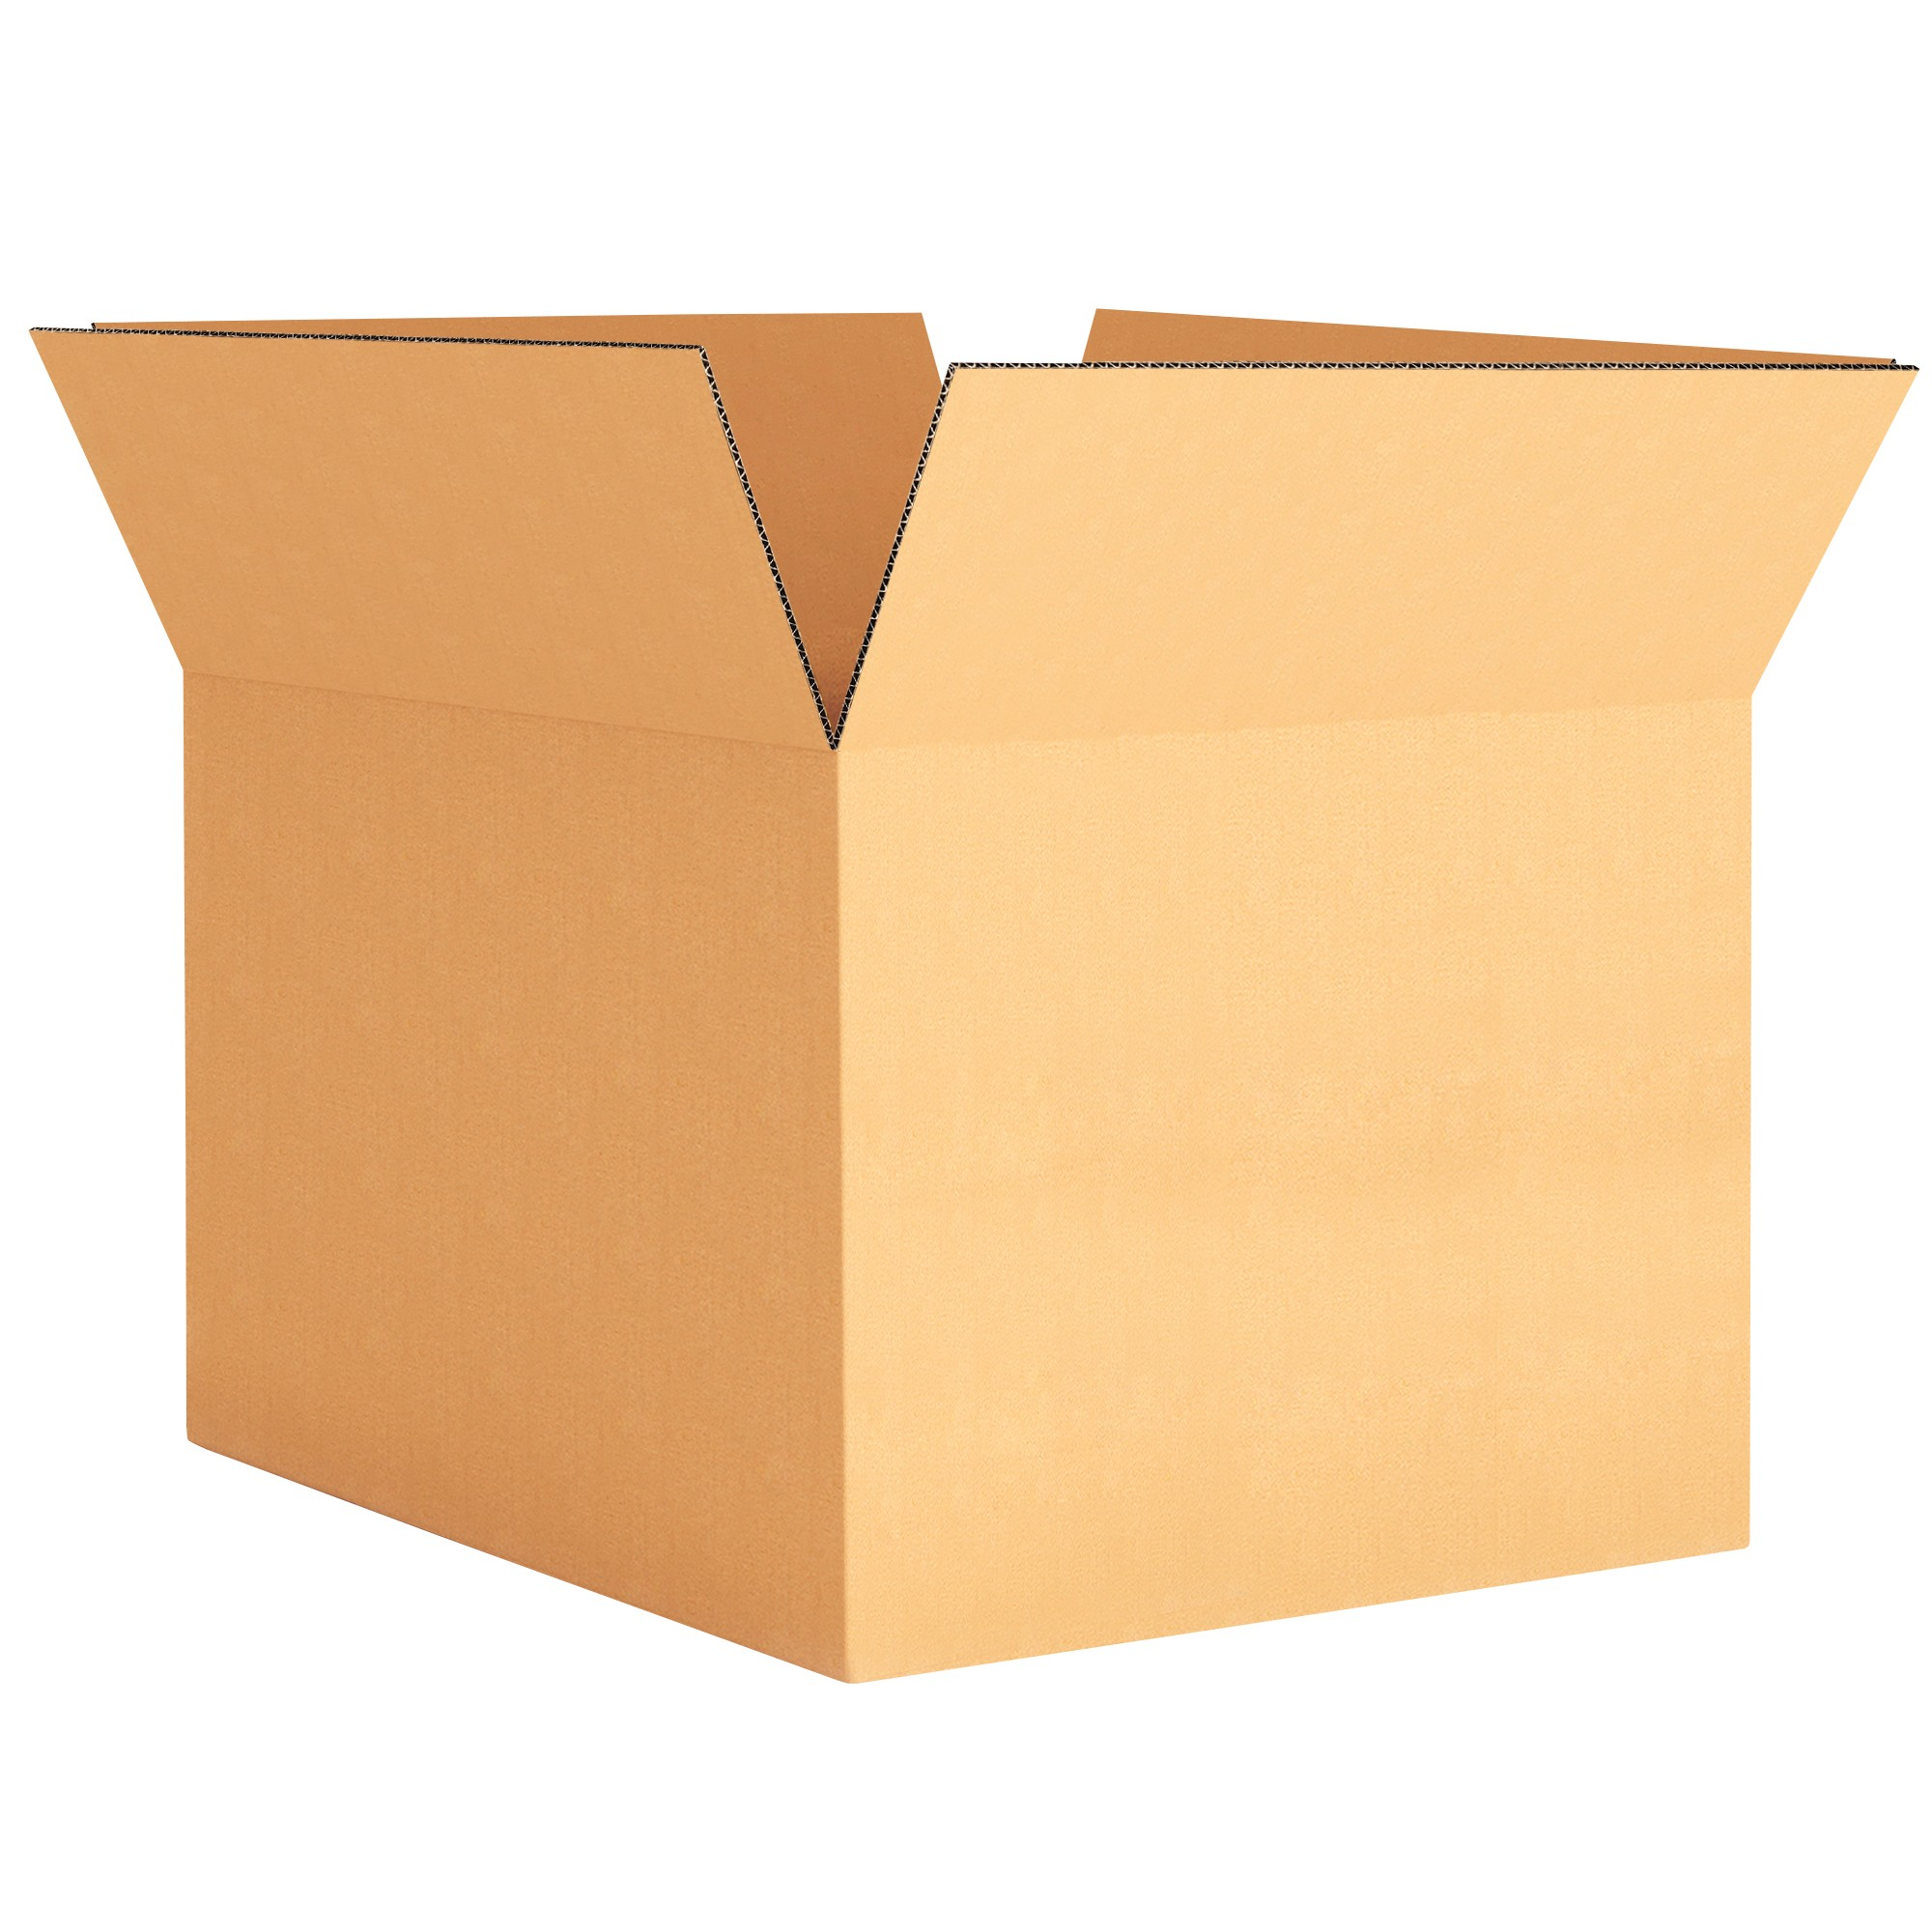 "TOTALPACK® 12 x 9 x 9"" Single Wall Corrugated Boxes 25 Units"